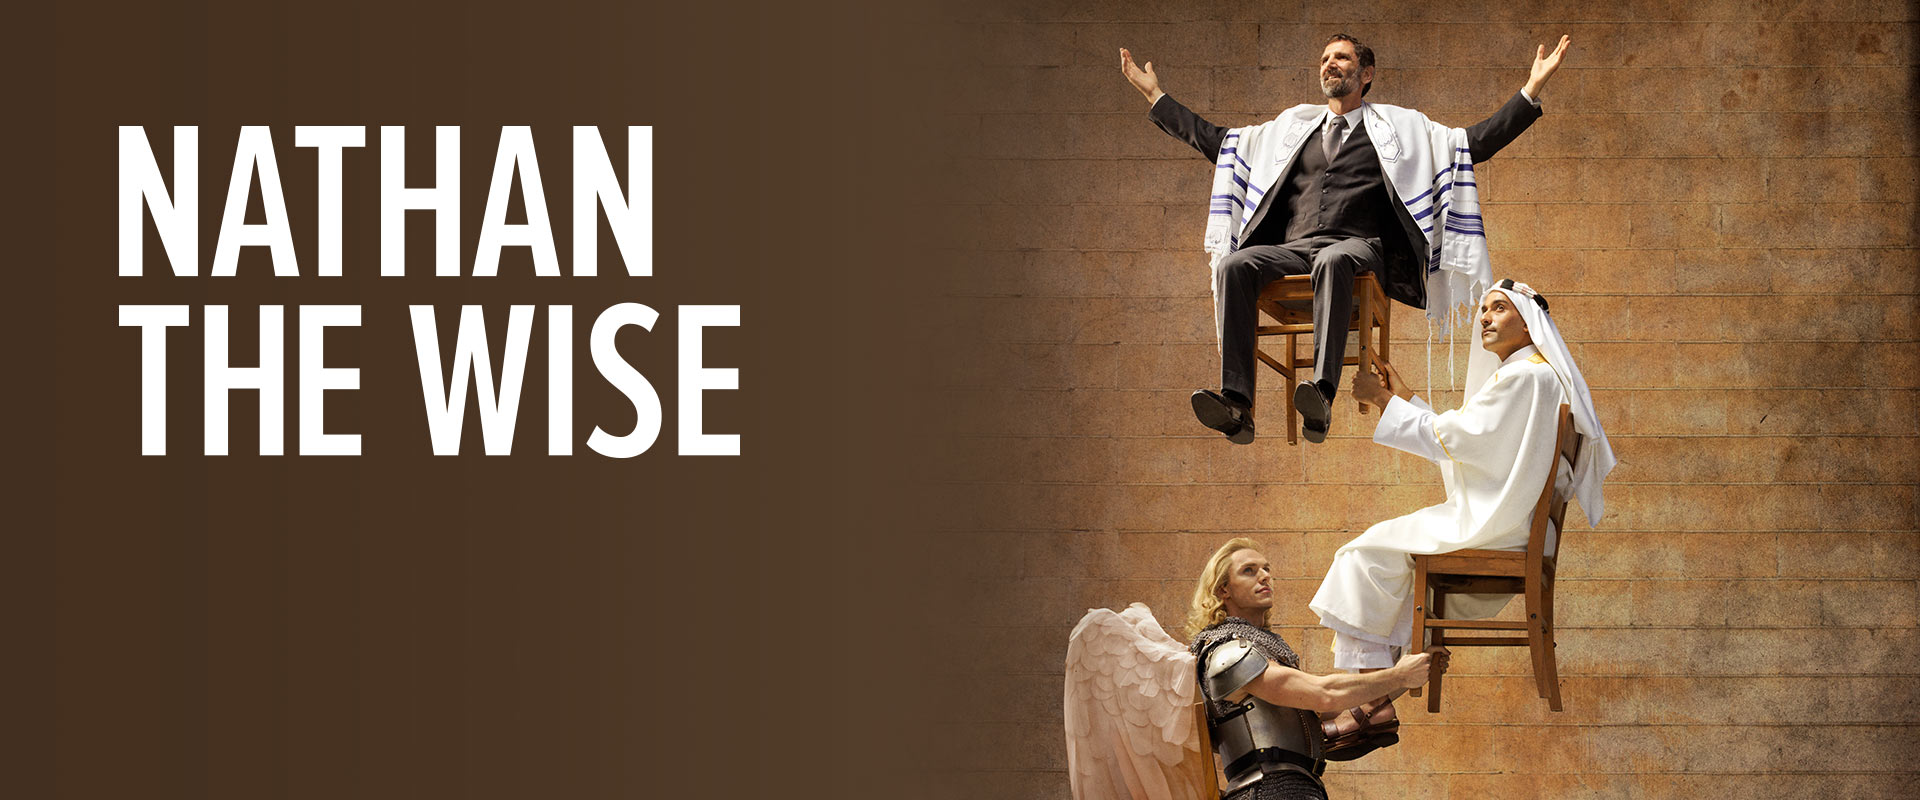 Publicity image from Nathan the Wise